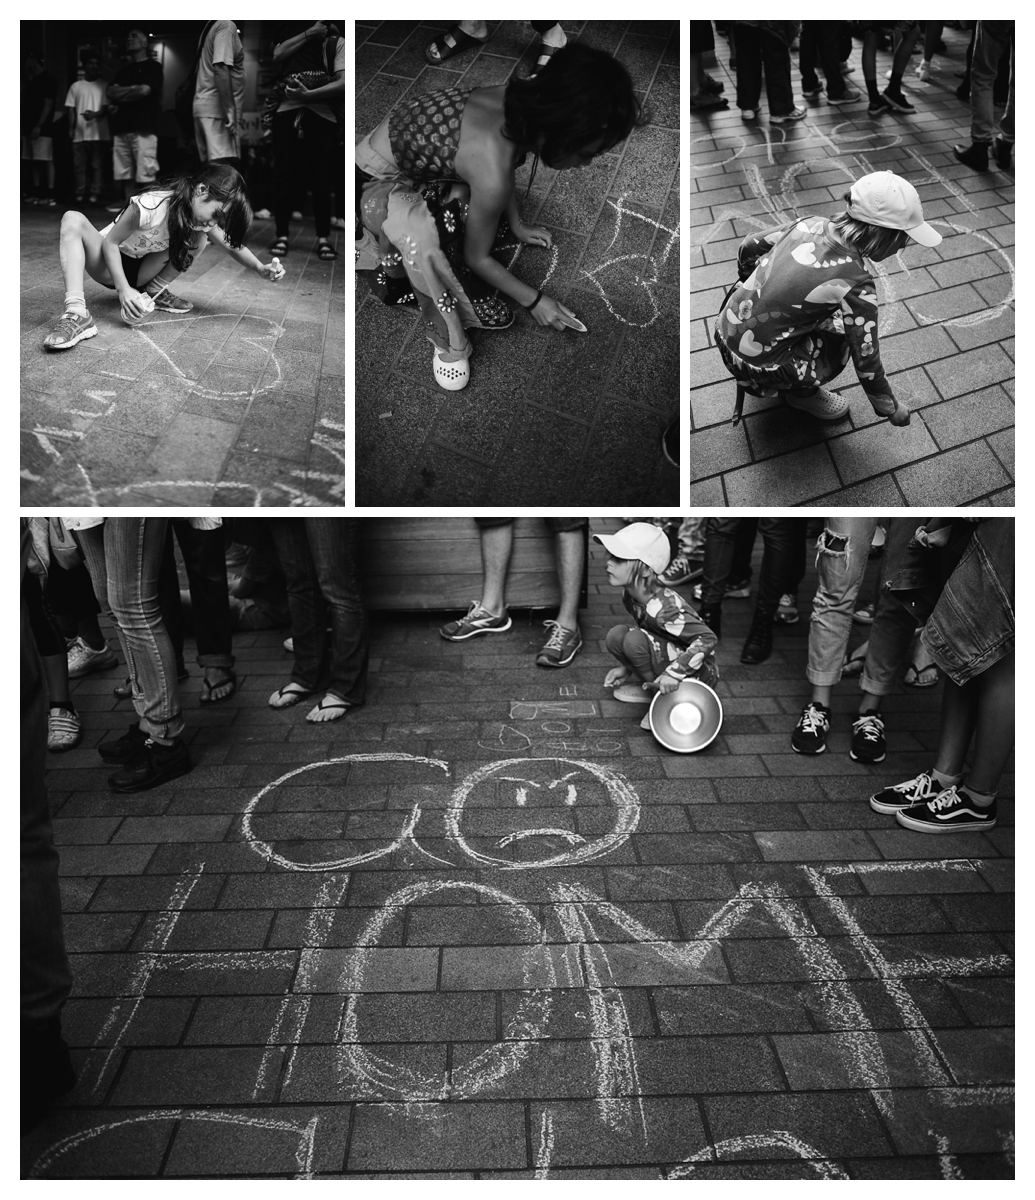 Greenpeace New Zealand stop deep sea oil protest black and white children photography